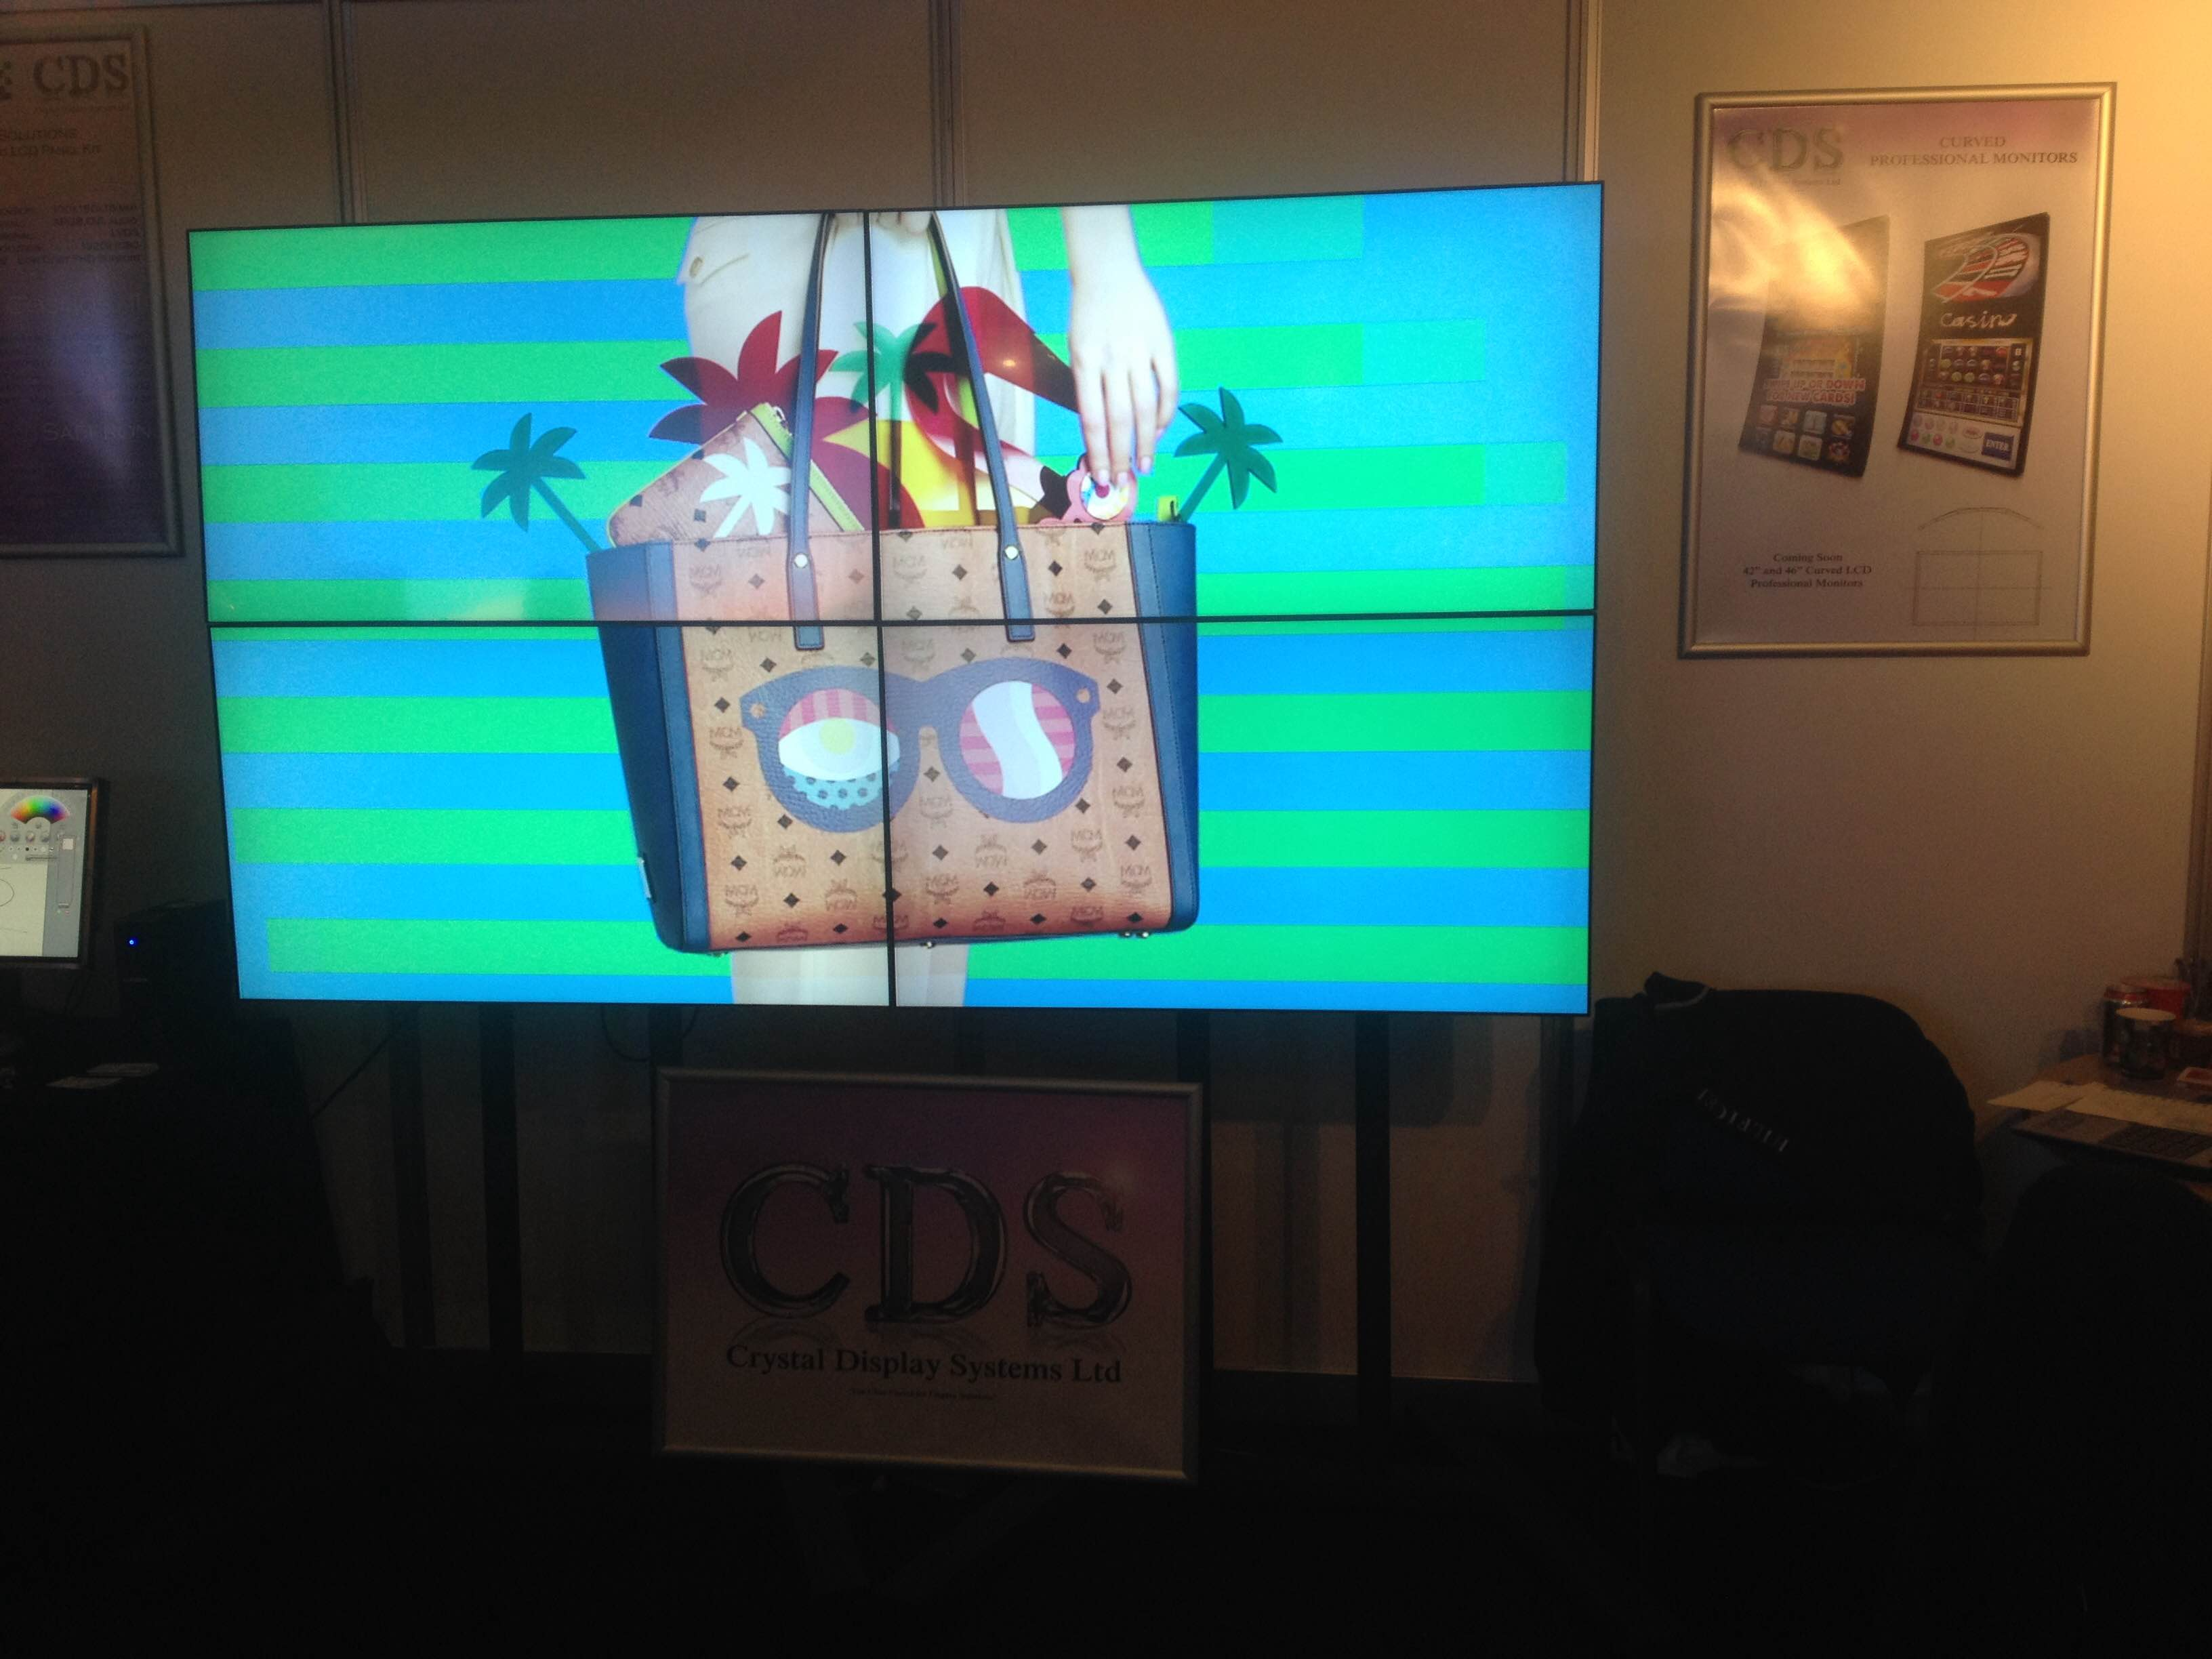 CDS Supports Value Added Resellers (VARs) with Videowalls